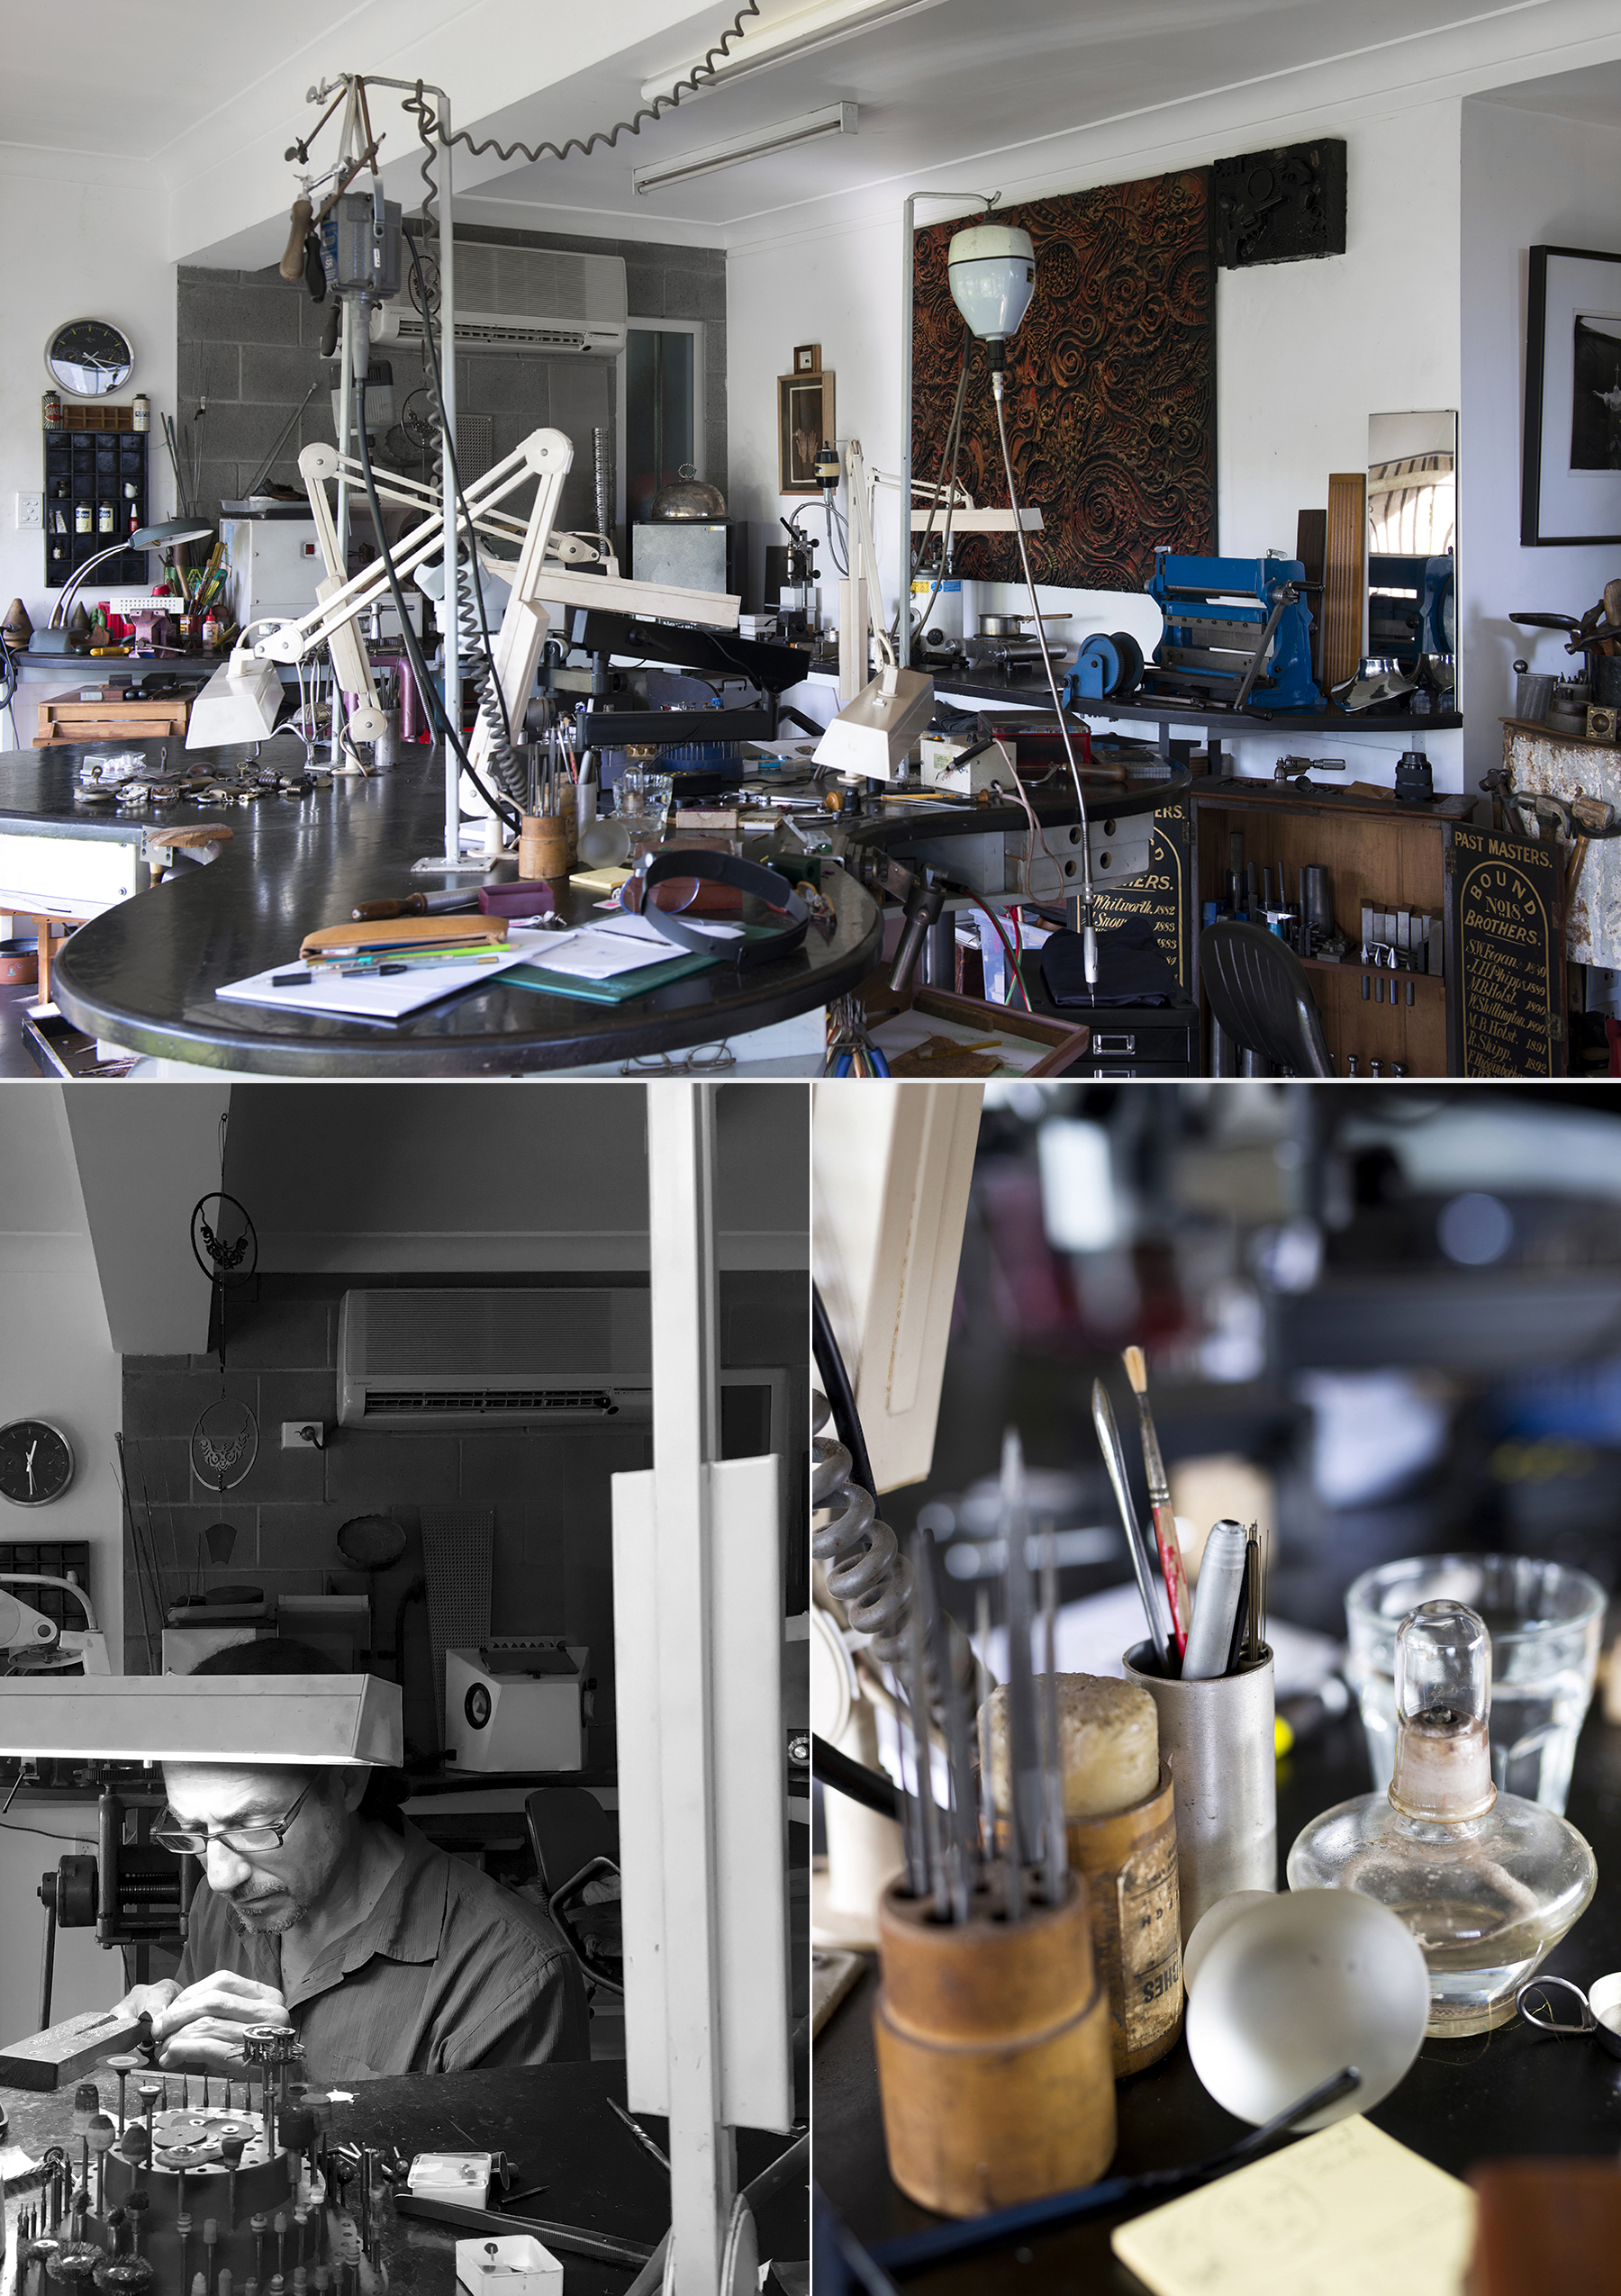 TOP: View of studio workbenches and the menagerie of equipment. BOTTOM LEFT: Juan-Luis at the bench. BOTTOM RIGHT: Studio details.